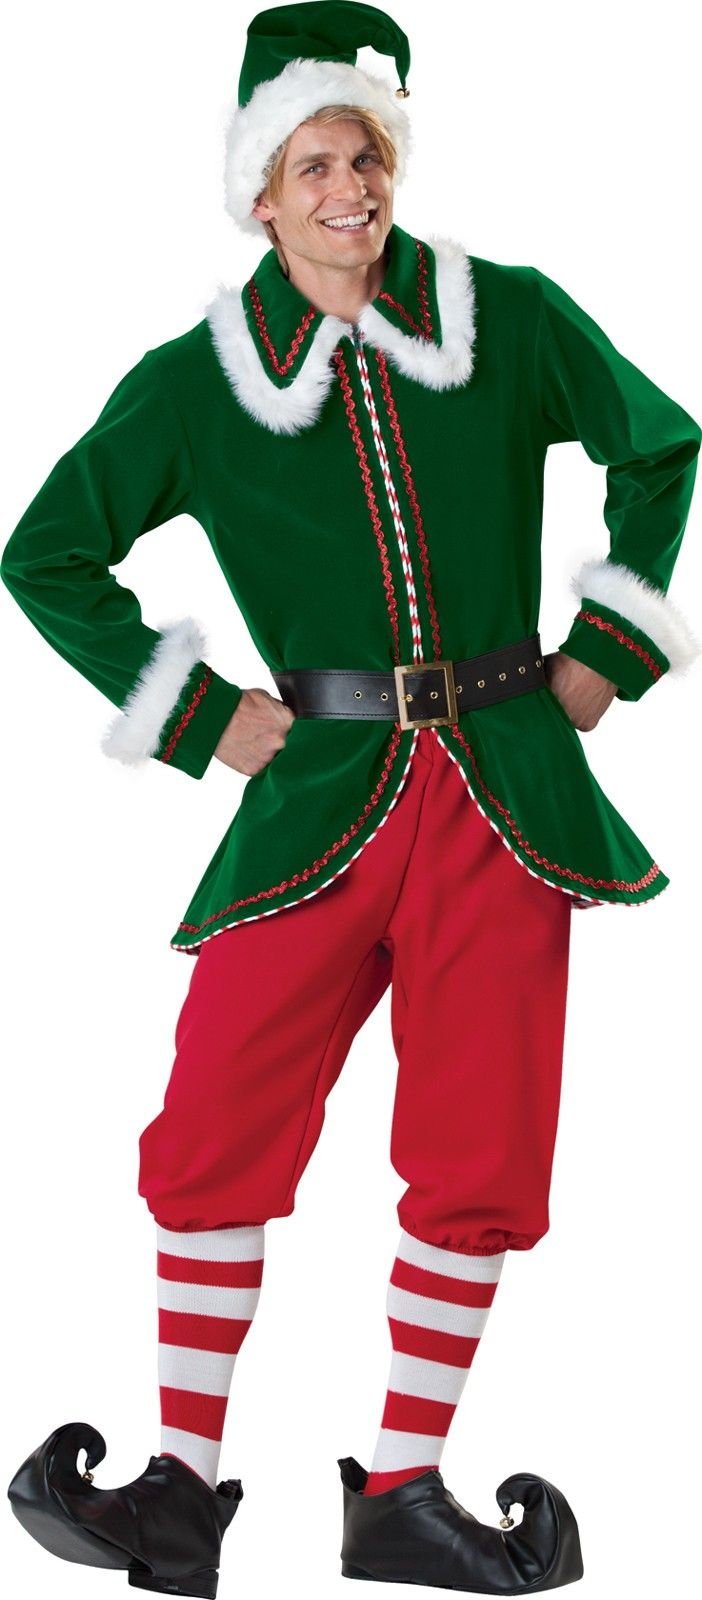 Santau0027s Elf Adult Costume - Santa is never complete without his helpers! | Costumes.com.au  sc 1 st  Pinterest & Santau0027s Elf Adult Costume | Elves Costumes and Buy costumes